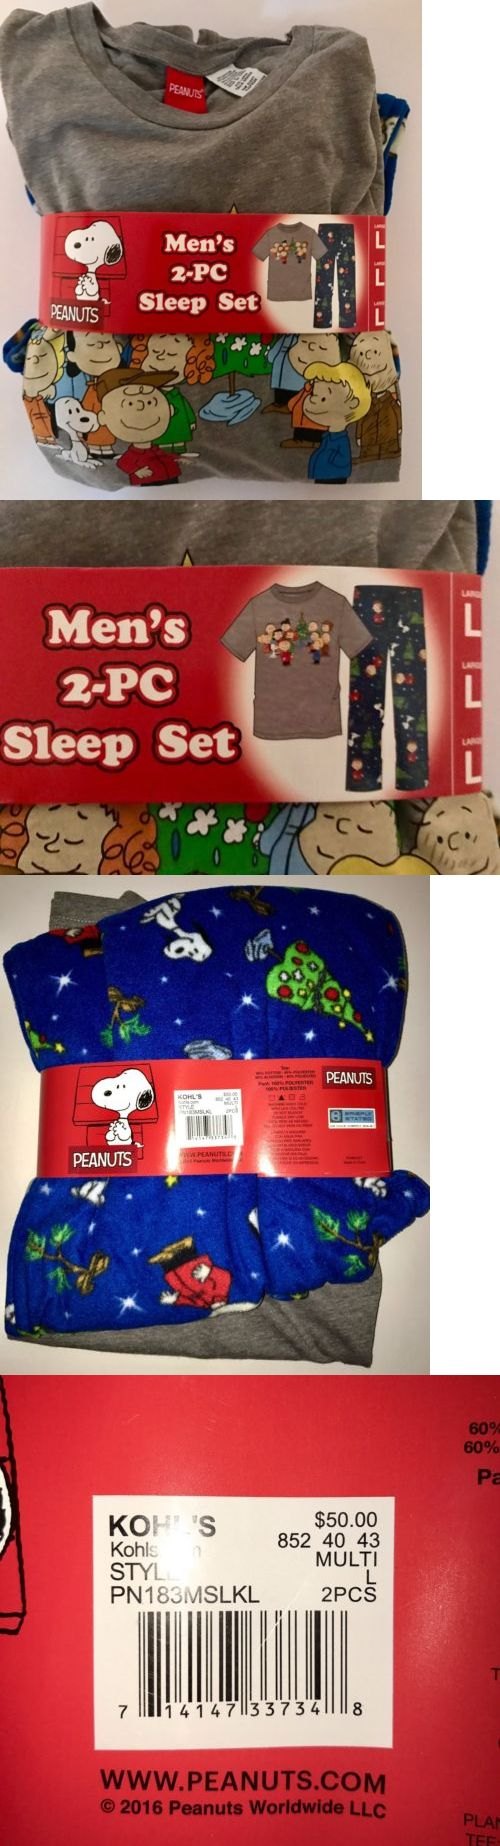 Sleepwear and Robes 11510: Peanuts Nwt Mens Pajama Fleece Pants Shirt Size L Snoopy Charlie Brown Christmas -> BUY IT NOW ONLY: $39.99 on eBay!